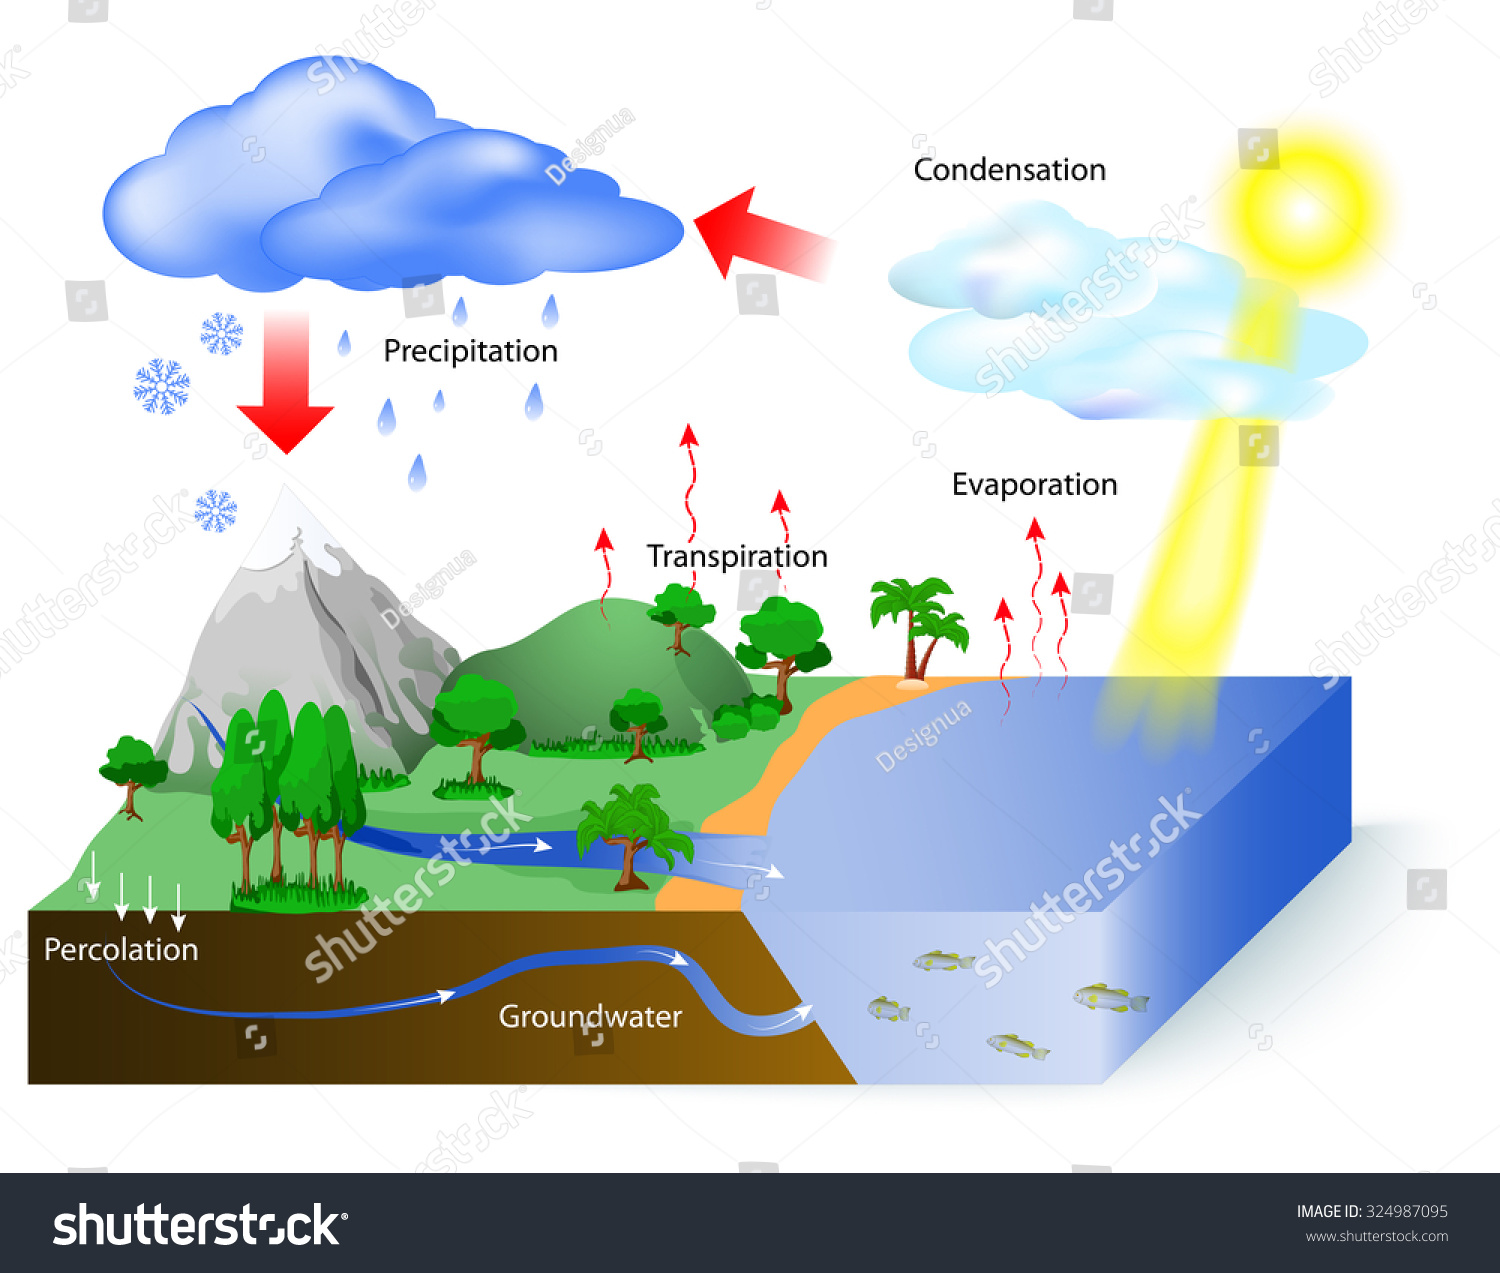 water cycle diagram the sun which drives the water cycle heats  : water cycle diagram labeled - findchart.co